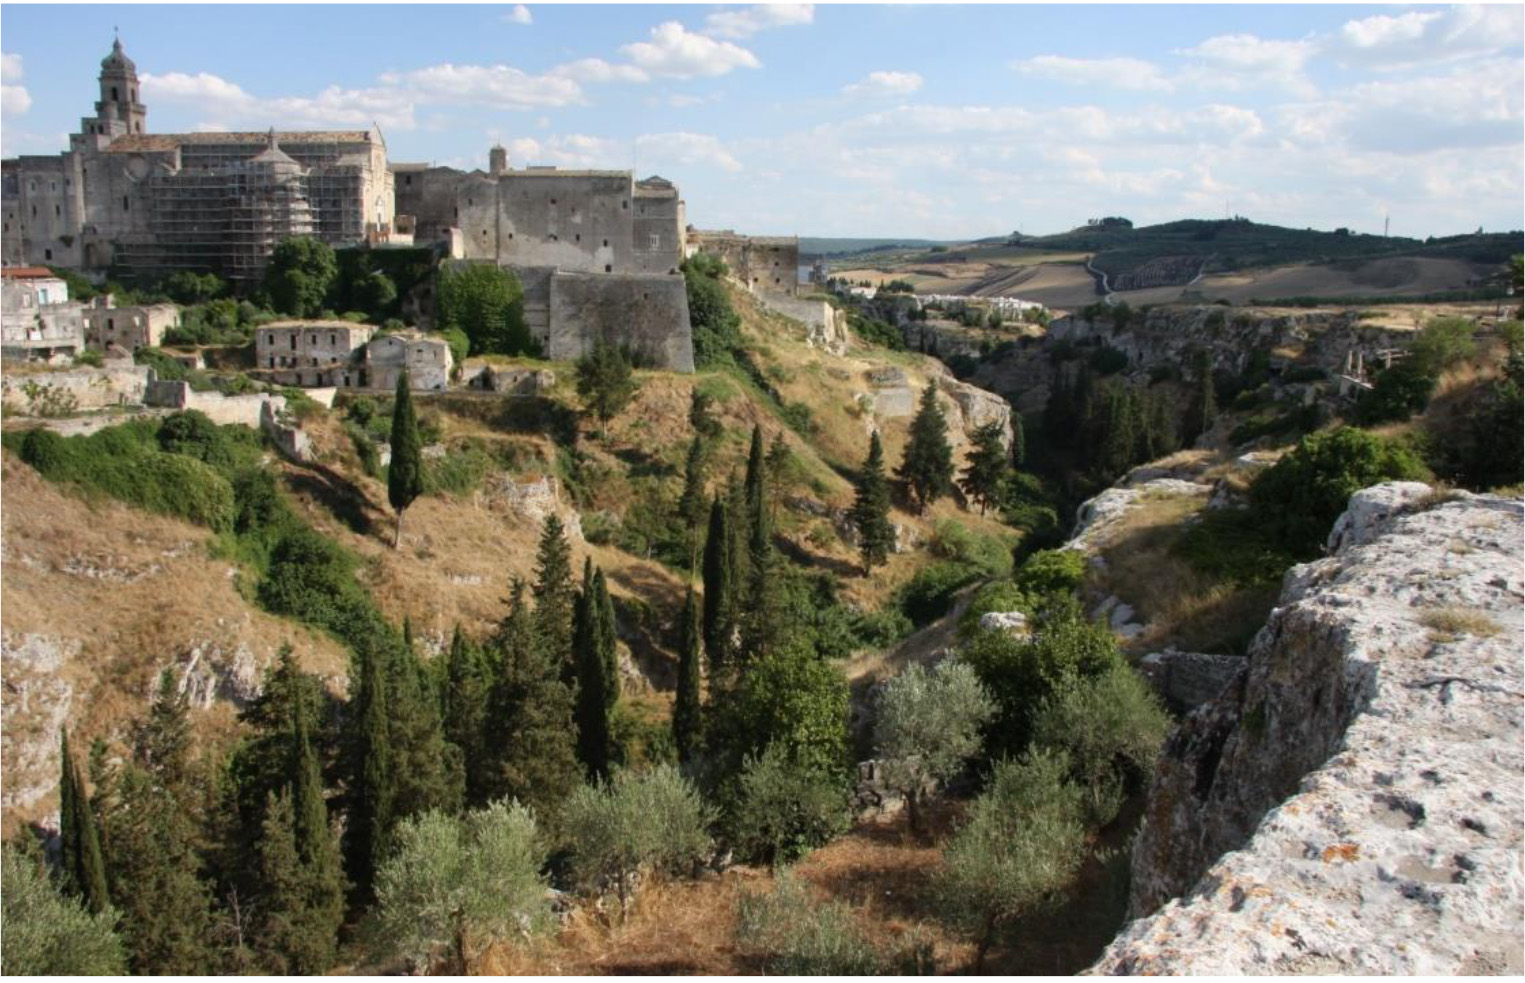 Shows the hilly landscape surrounding the town of Gravina (Apulia region)